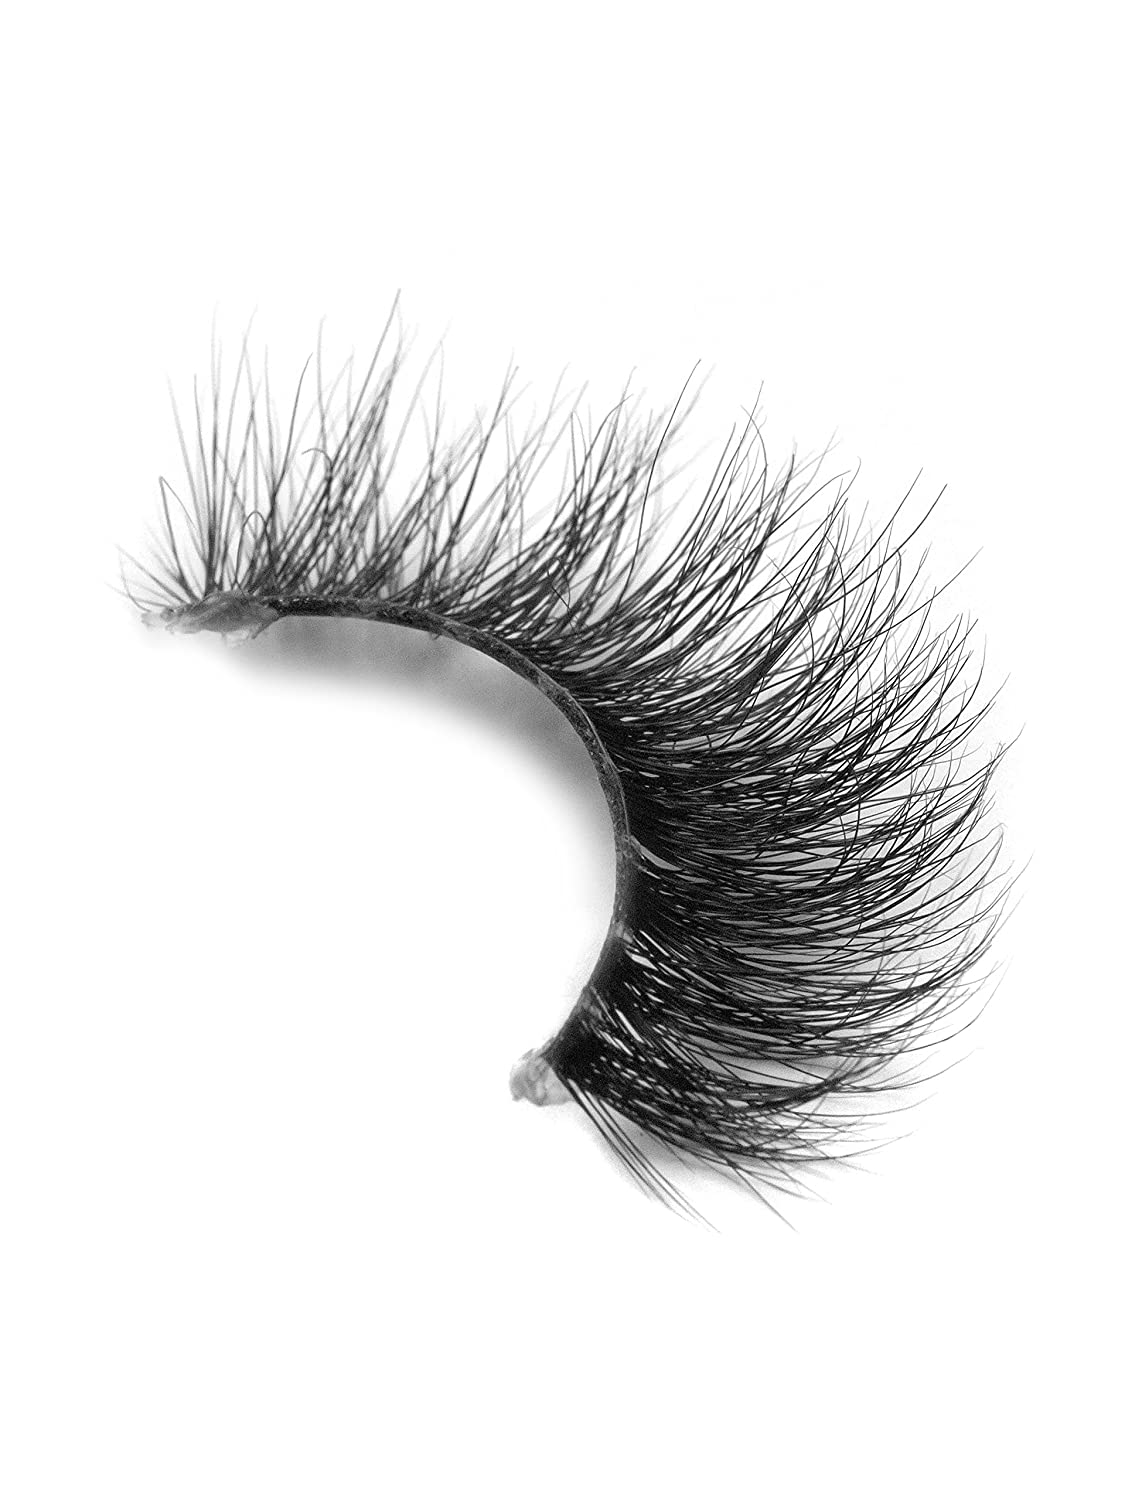 Amazon.com : Eyewin False Eye Lashes Invisible Transparent Band 3D Mink Lash Extension Cruelty-free Reusable Glam Natural Styles (E13) : Beauty